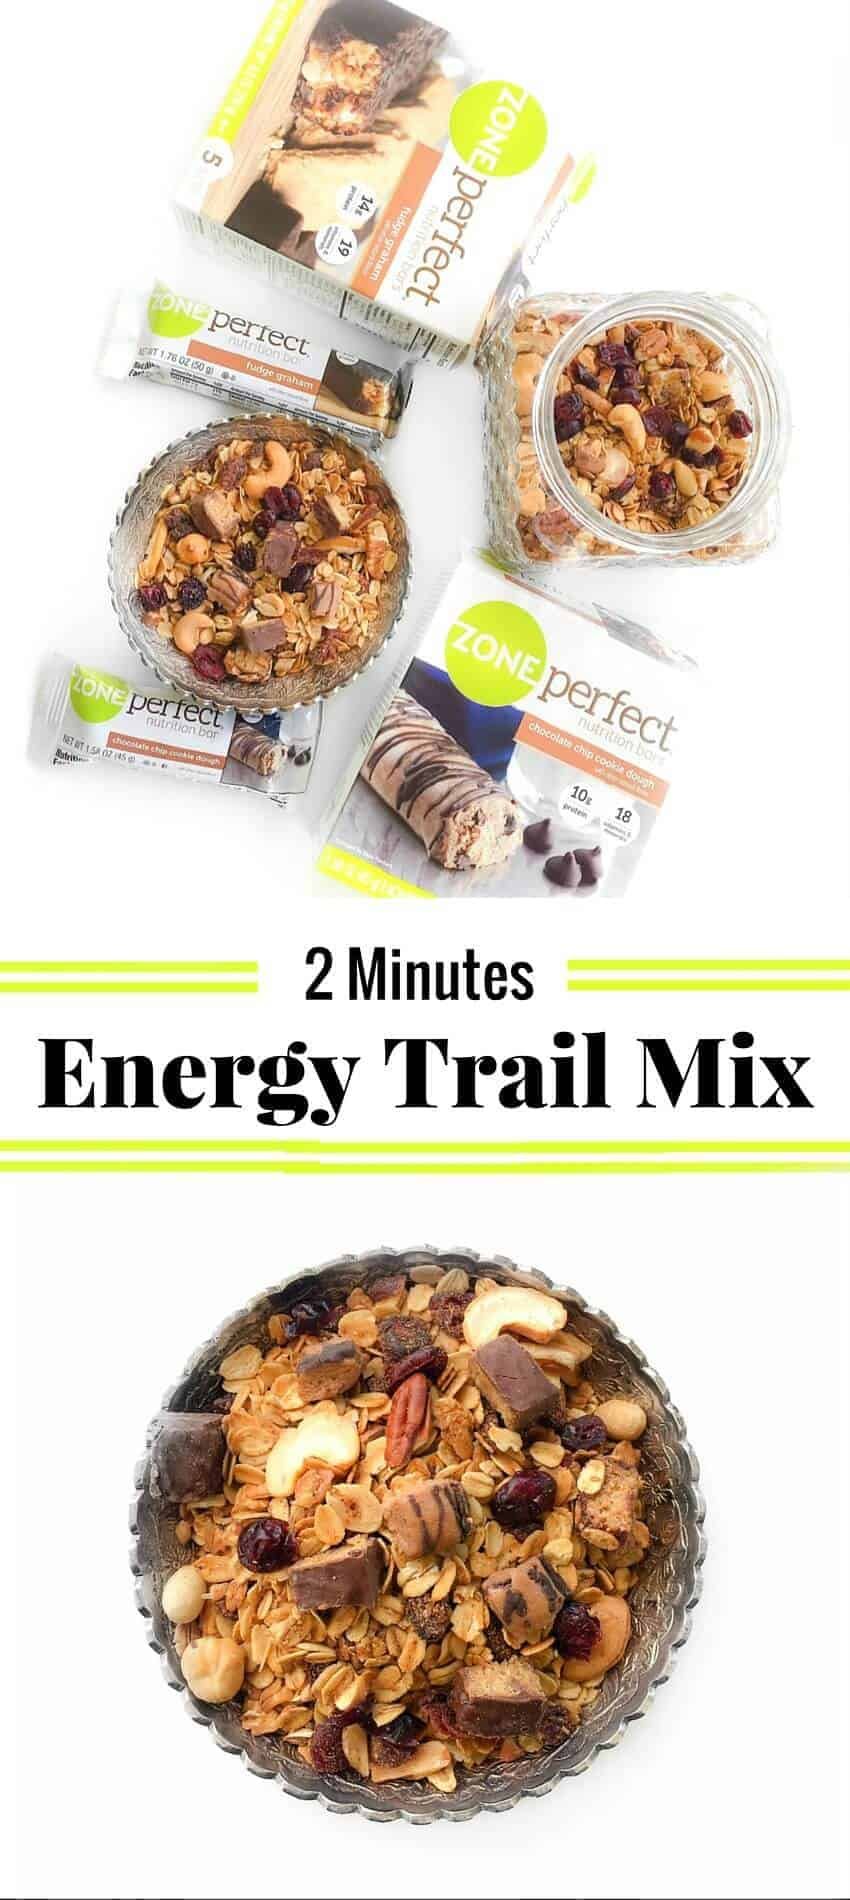 2 Minutes Energy Trail Mix Recipe : #ad #snackandrally #ZonePerfect #cbias #trailmix #recipe